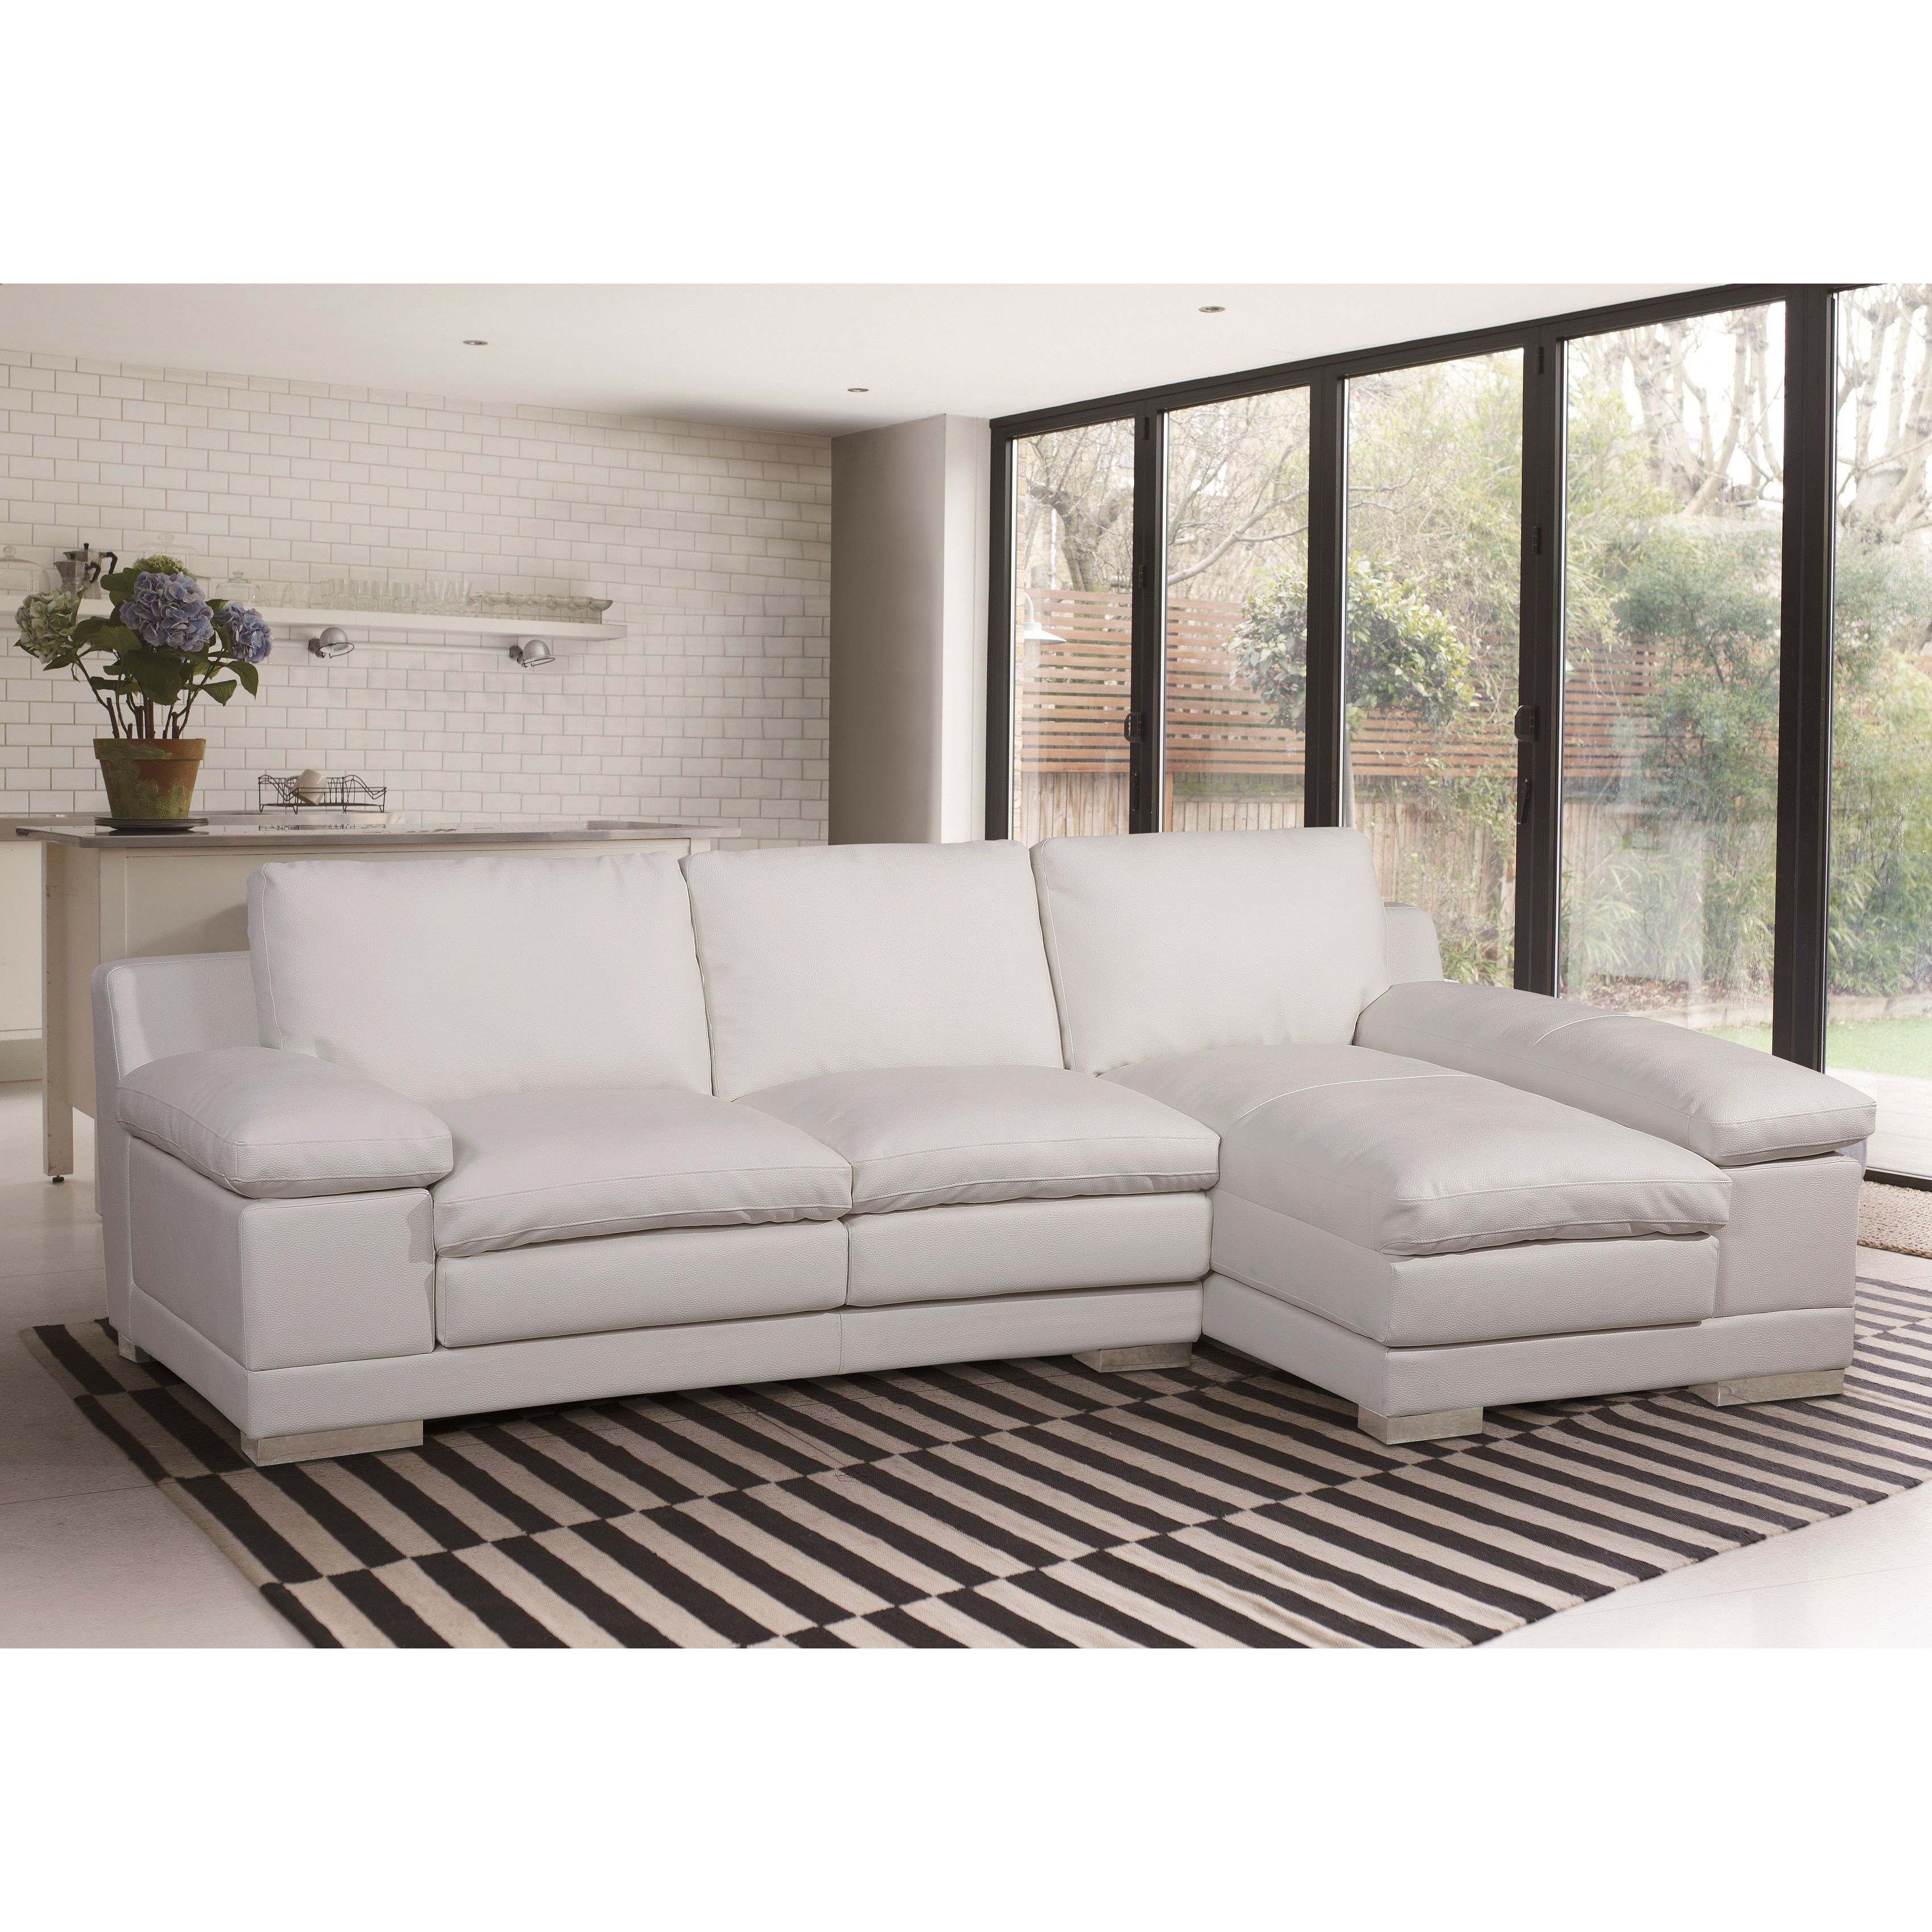 Us pride furniture adrian contemporary sectional sofa set leather